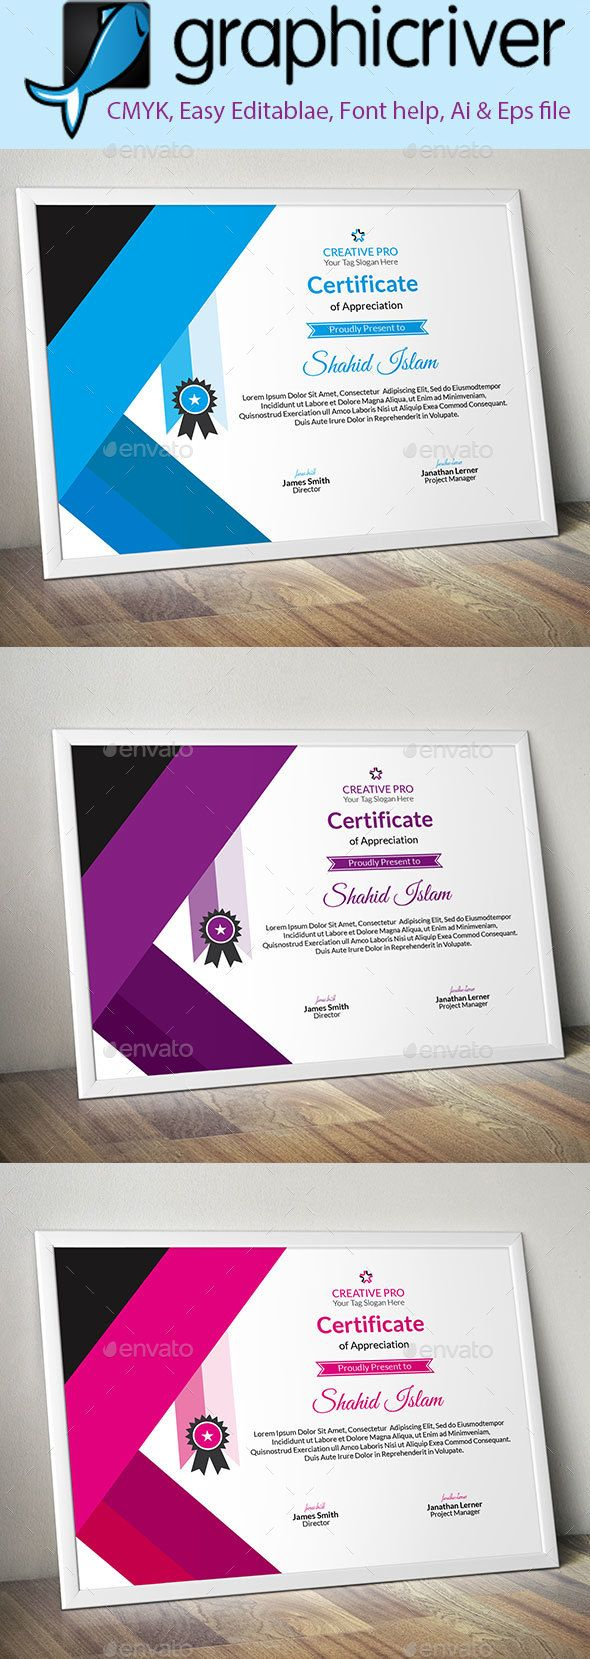 25 best Certificate layout images on Pinterest | Certificate ...